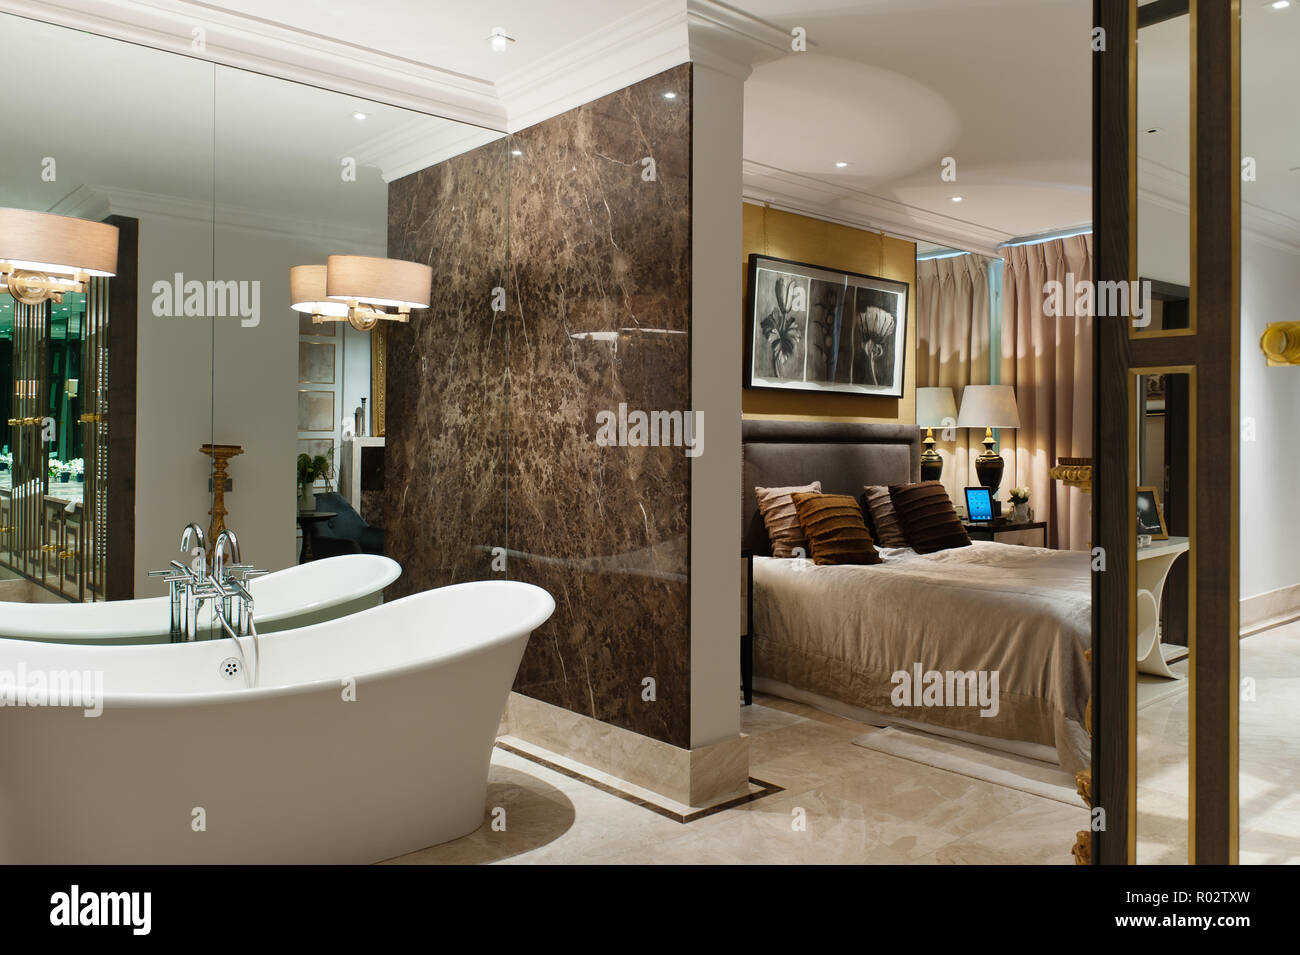 Luxury ensuite bathroom with mirrored wall Stock Photo